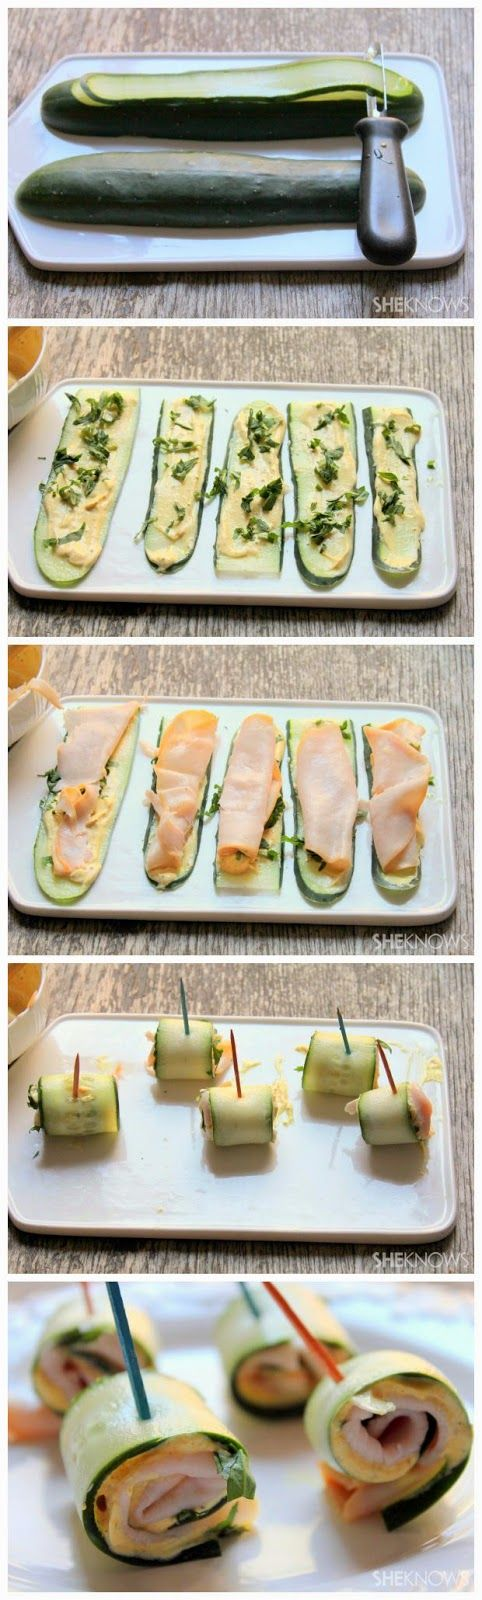 Sick of boring work lunches? Pack these Cucumber roll-ups with hummus and turkey.but I'm going to replace it with smoked salmon and cream cheese.